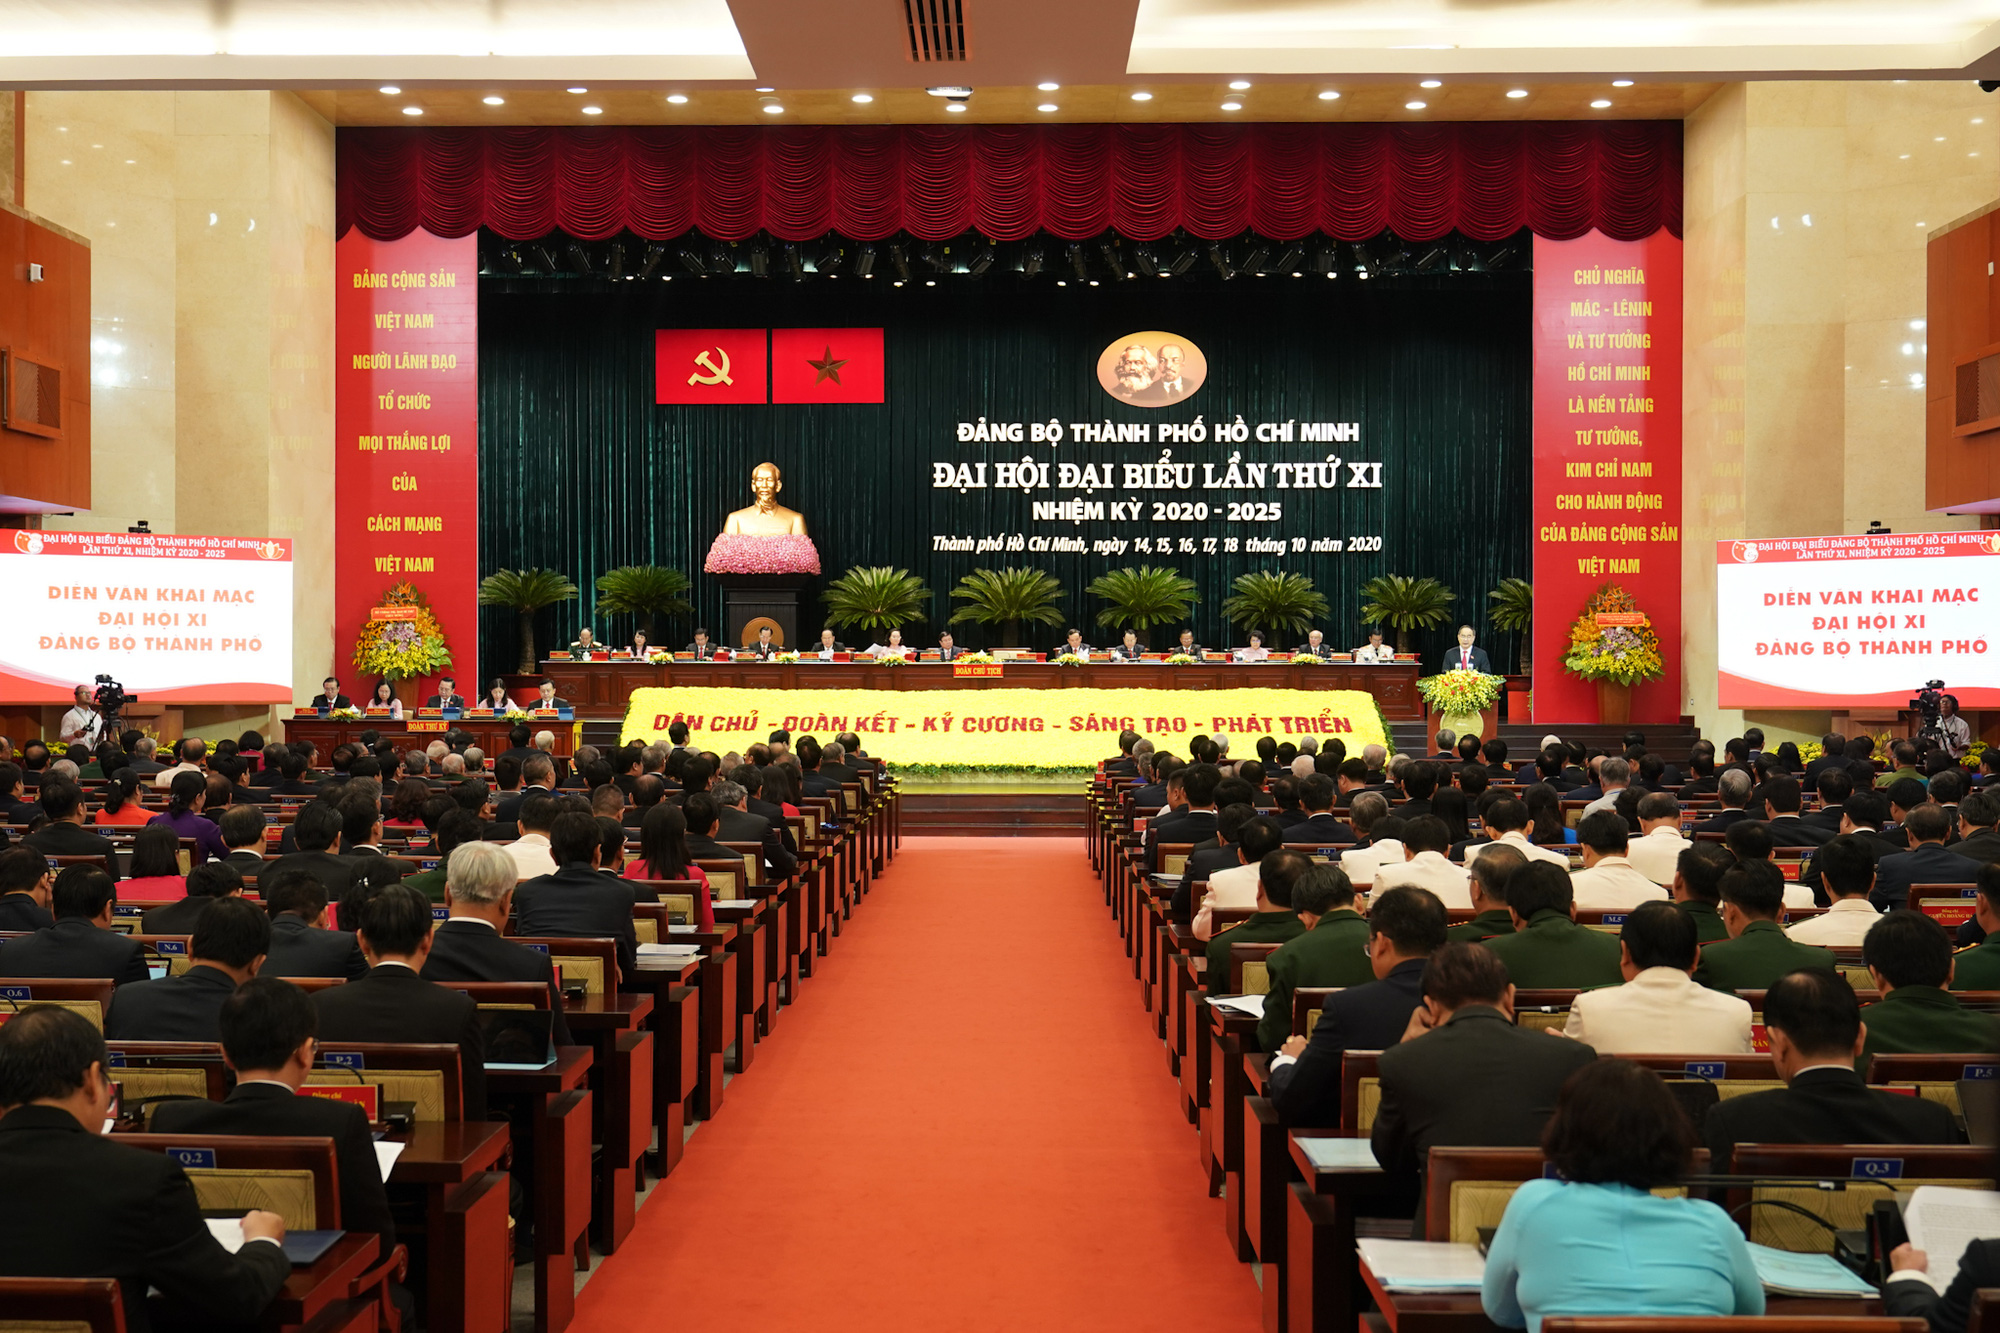 The 11th Congress of the Ho Chi Minh City Party organization opens on October 15, 2020. Photo: Tu Trung / Tuoi Tre